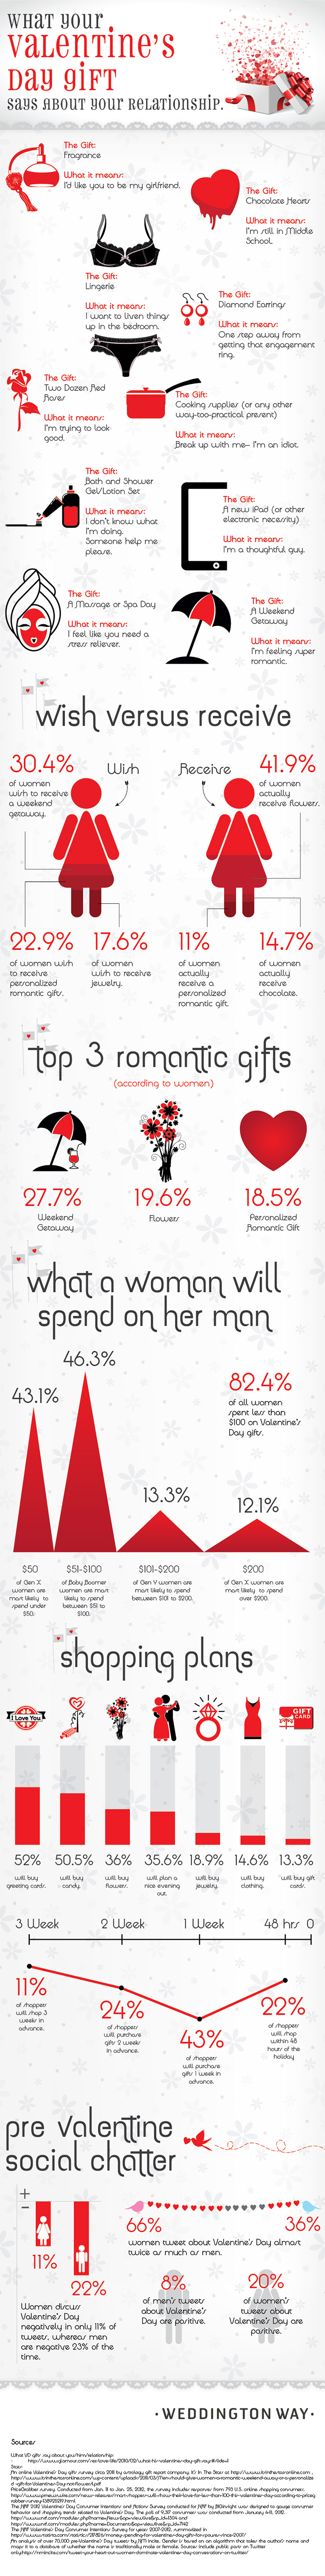 What Does Your Valentine's Day Gift Say About Your Relationship? | Business 2 Community